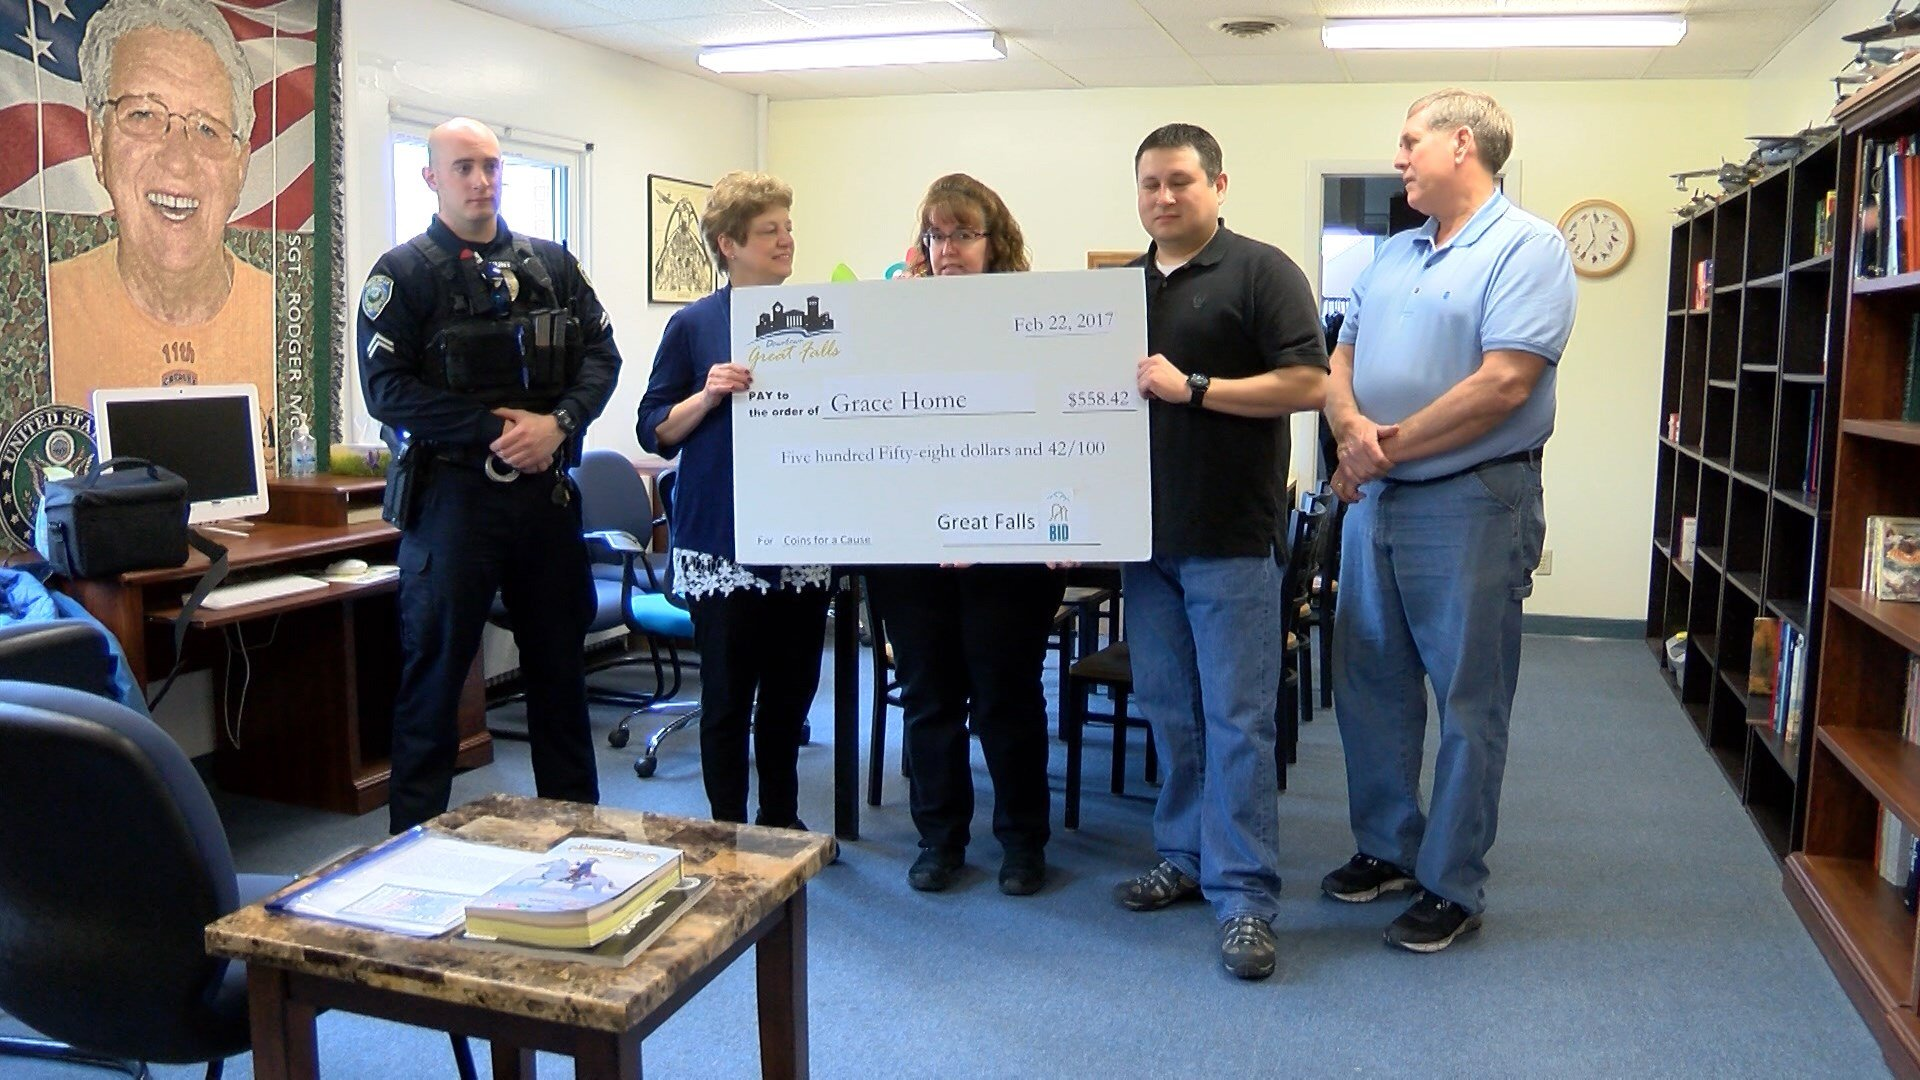 The Downtown Safety Alliance presented the Grace Home Veteran's Center, which helps homeless veterans, a check for $558.42 Wednesday.